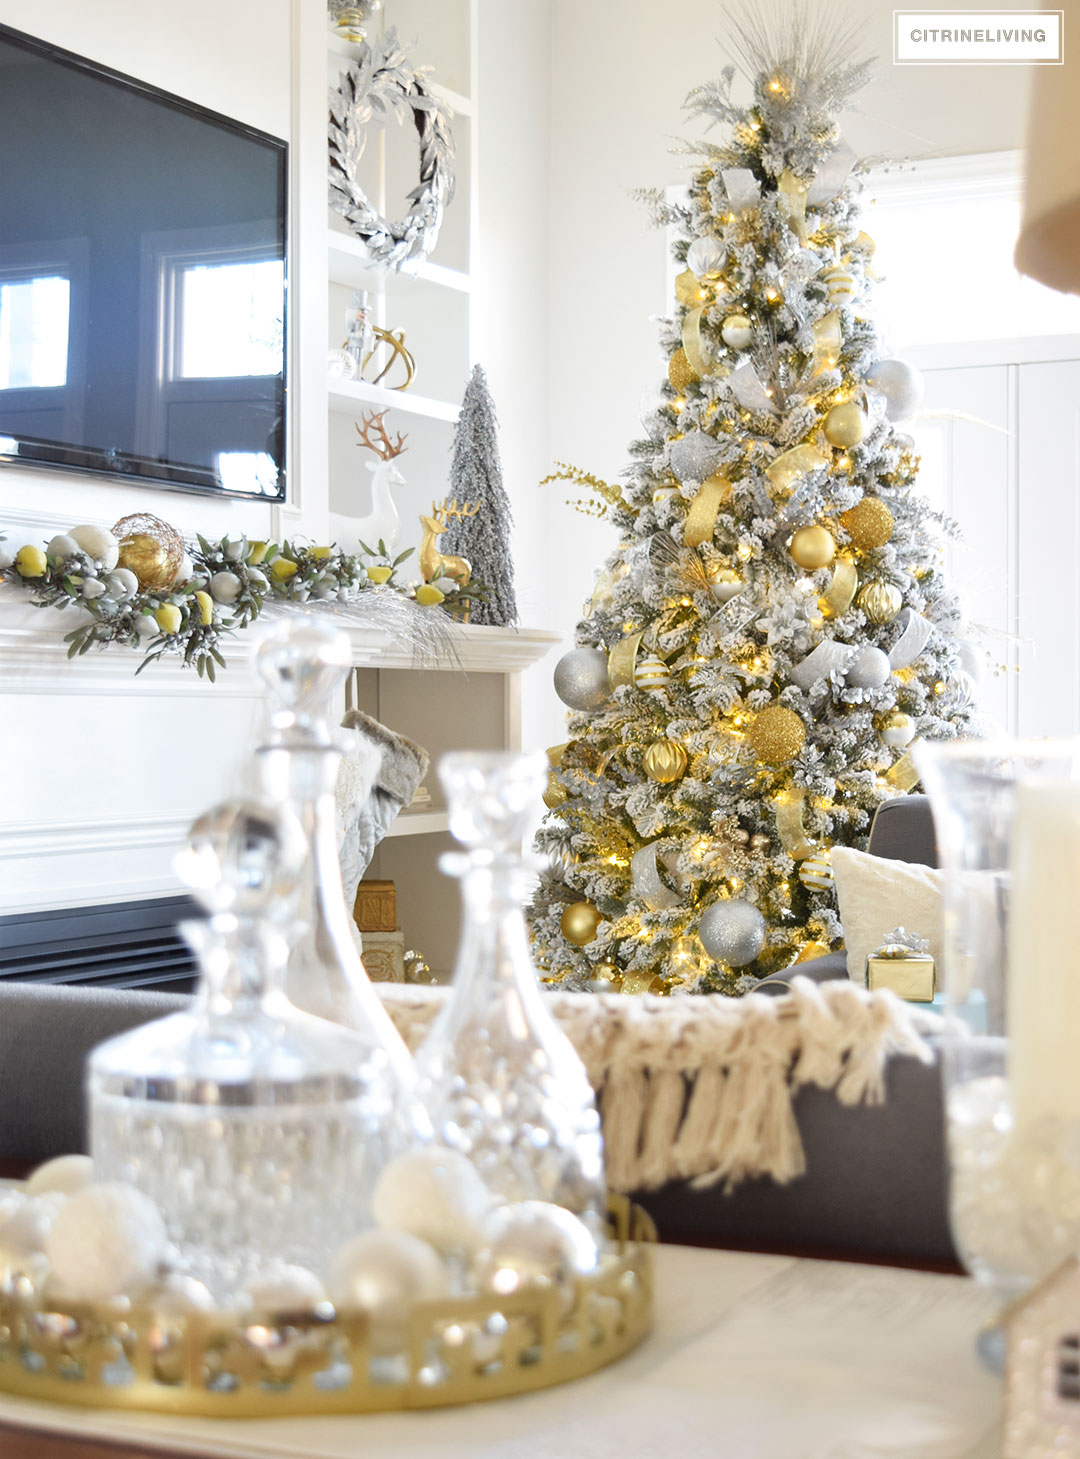 Christmas Home Tour - Stunning flocked Christmas tree with beautiful metallics create a perfectly chic Holiday theme